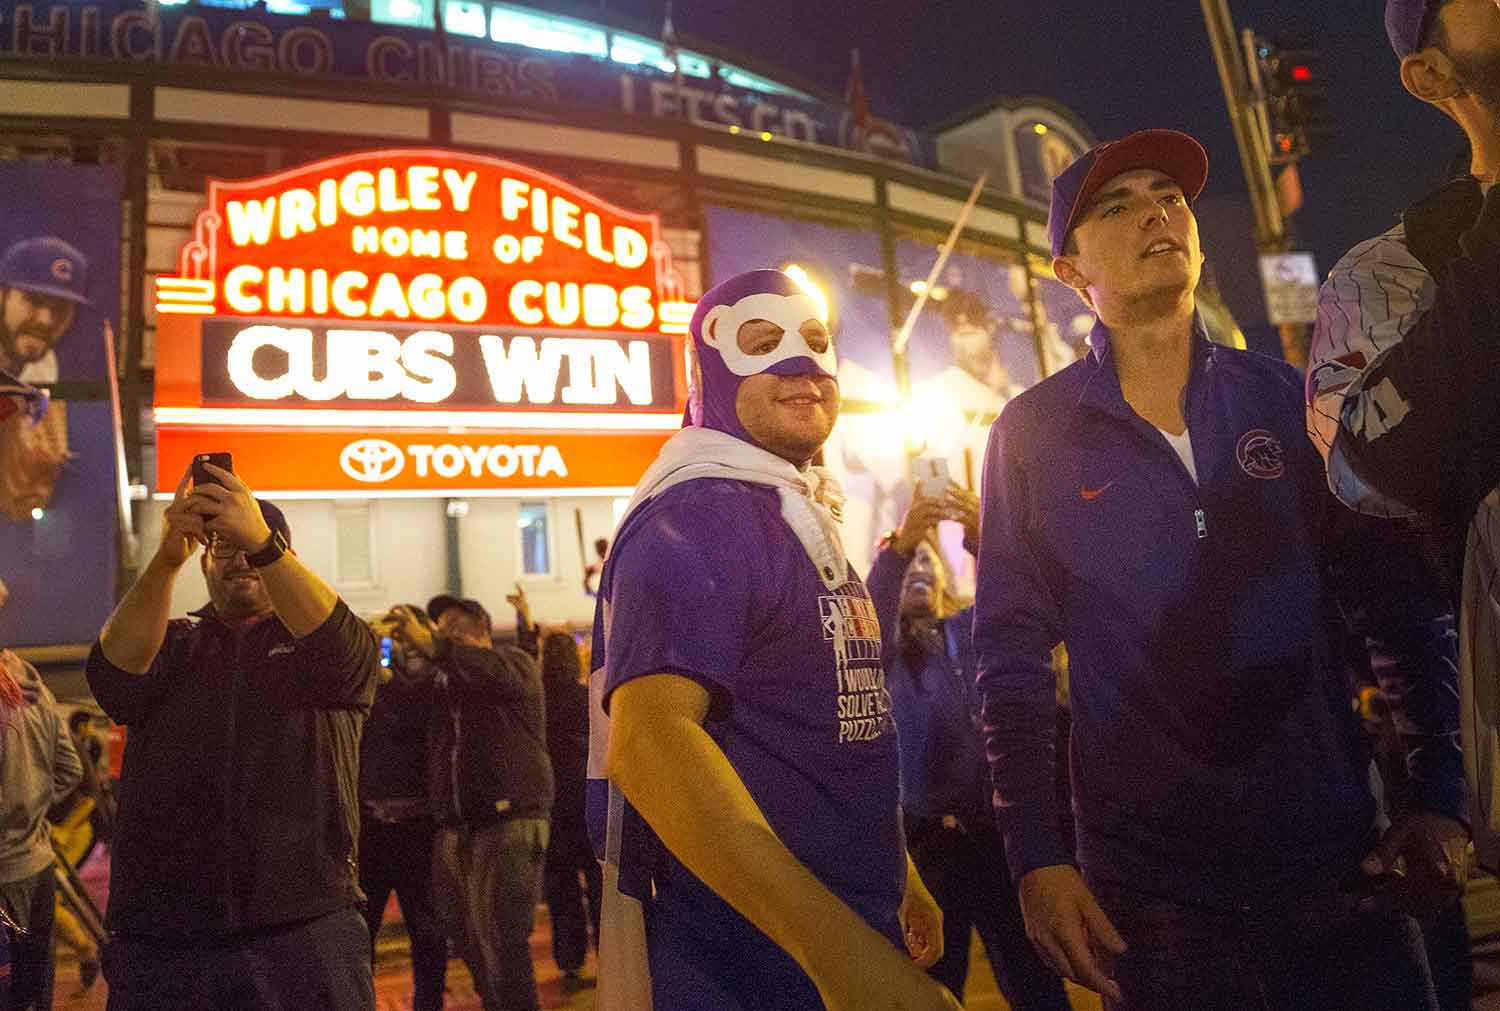 Chicago Cubs odds, Wrigleyville, Chicago gentrification, Metro Chicago, Cubs playoffs,